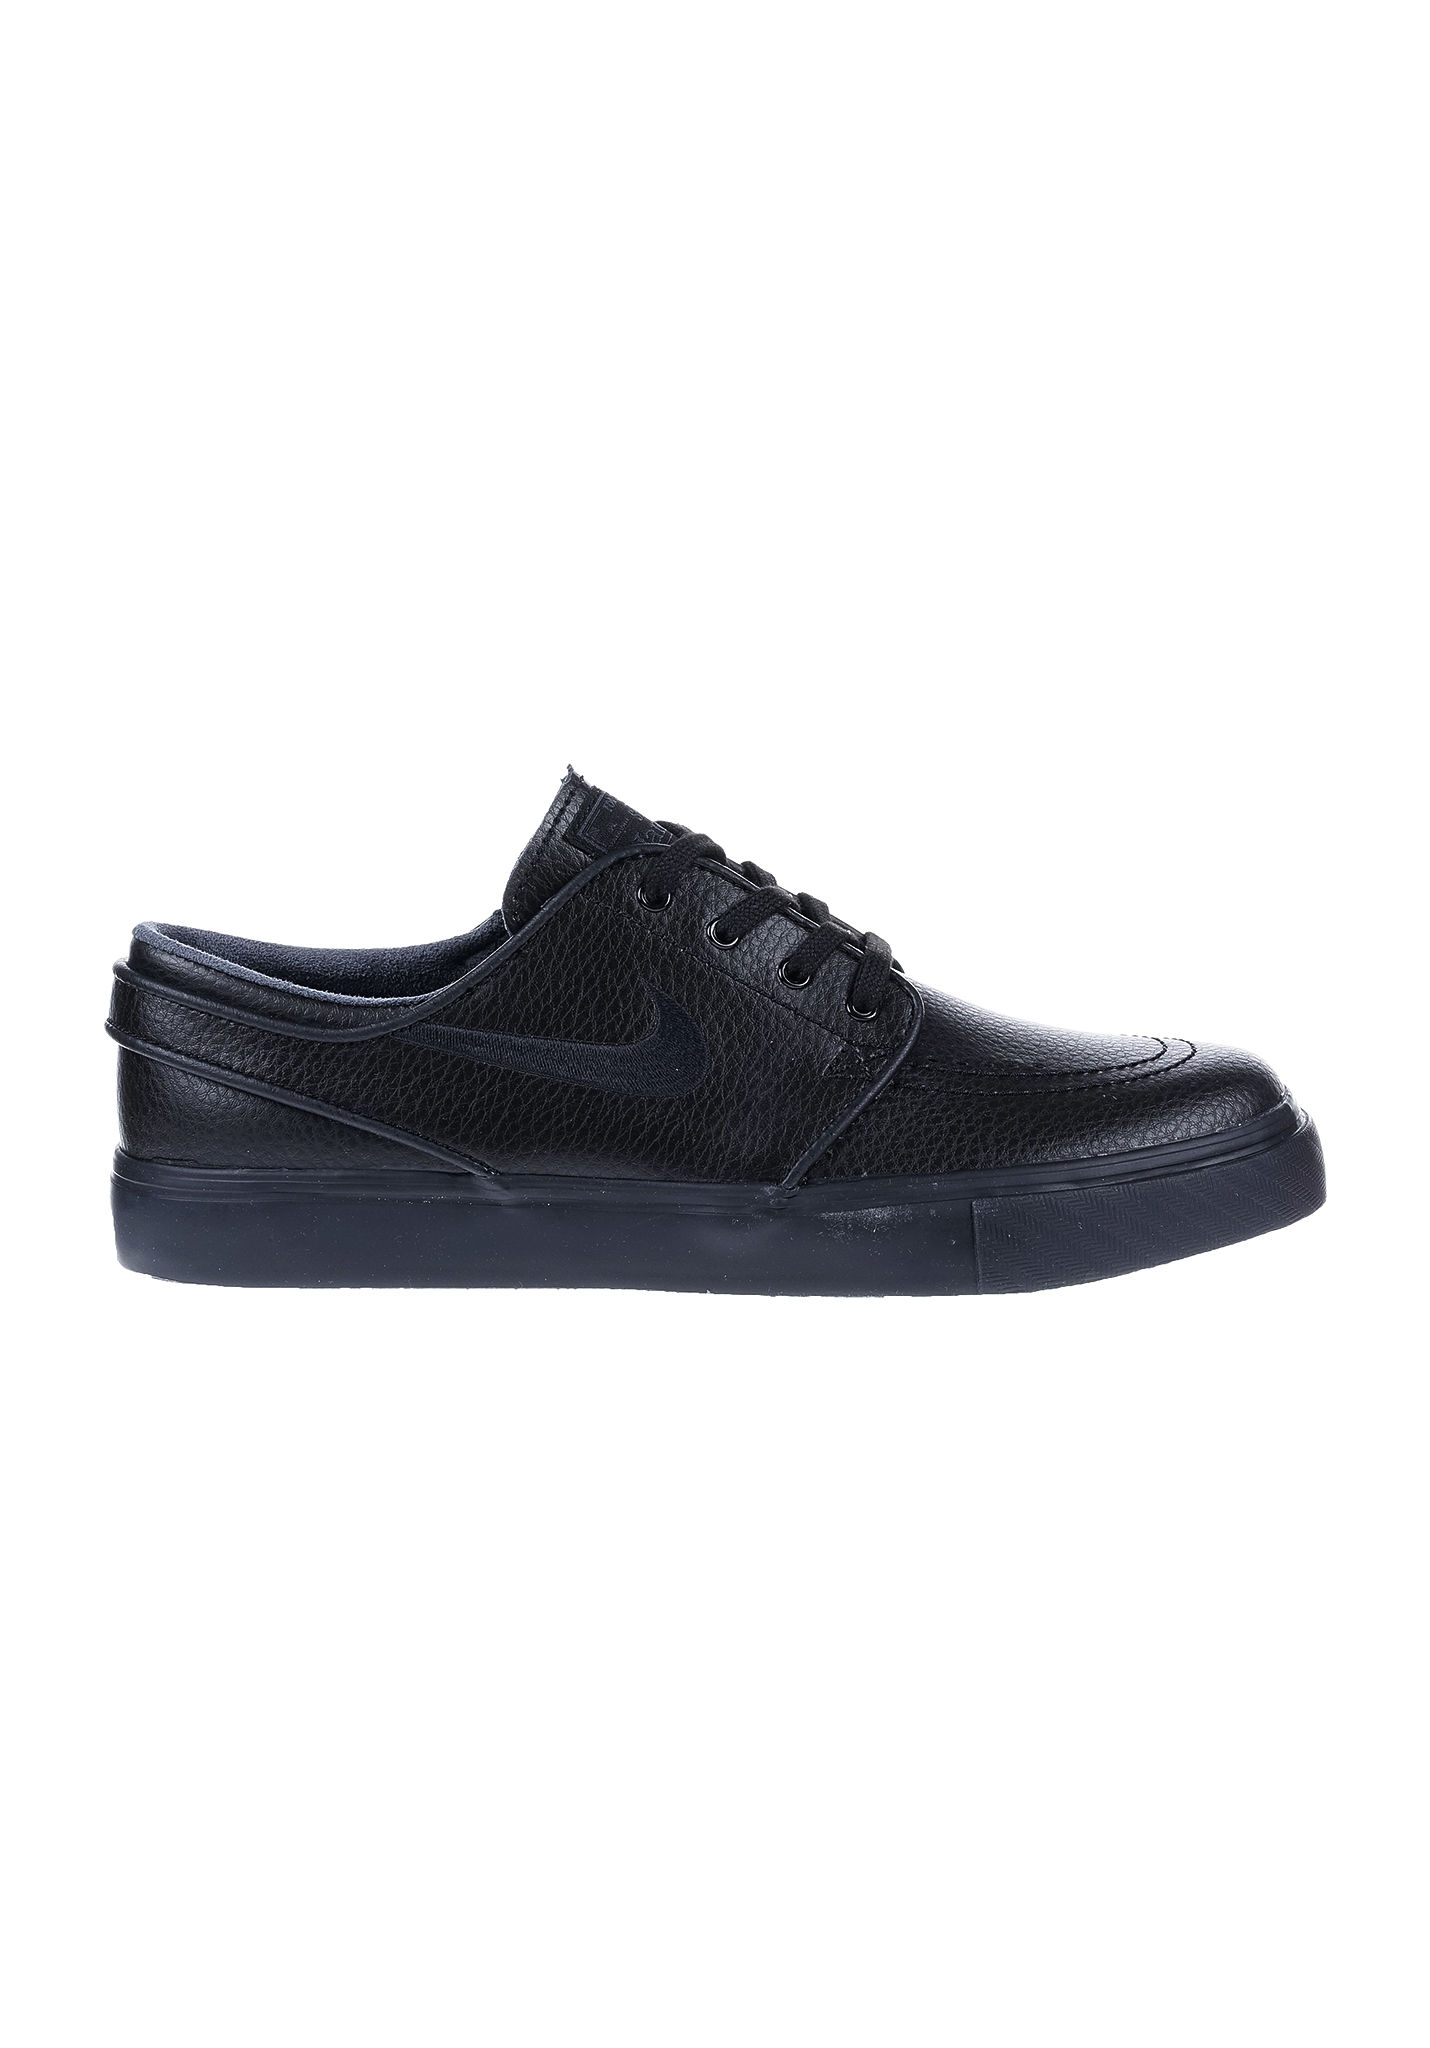 c81ebaa8cc6396 NIKE SB Zoom Stefan Janoski L - Sneakers for Men - Black - Planet Sports